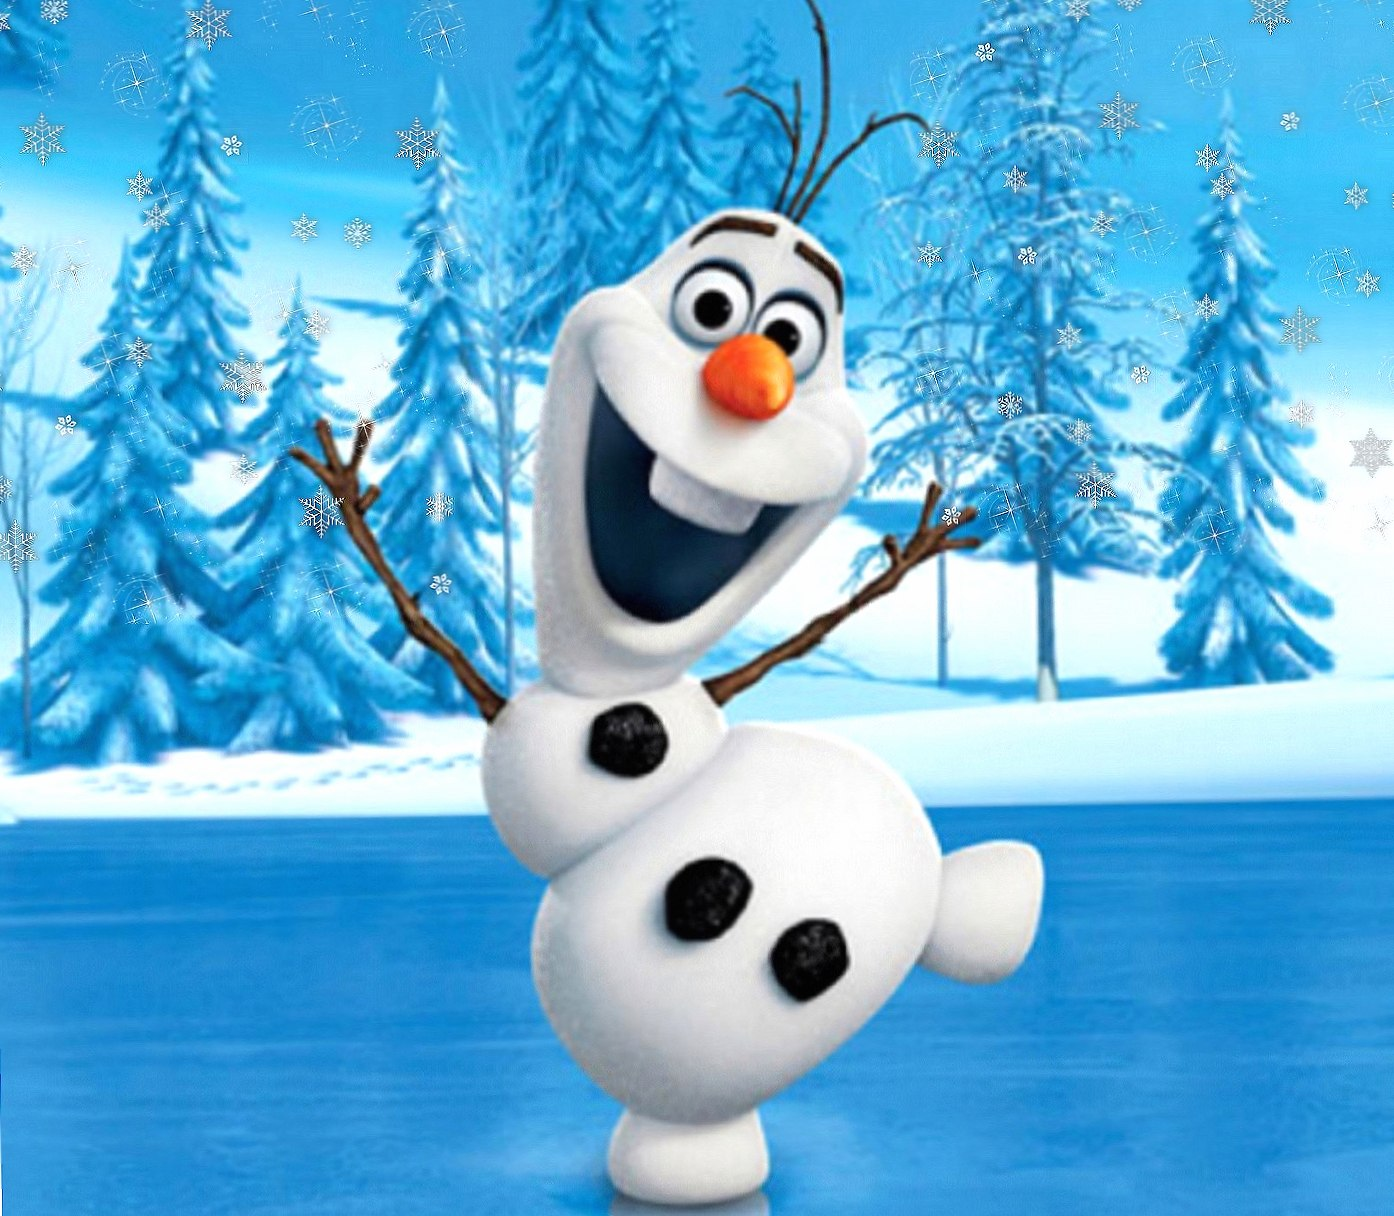 snowman olaf wallpapers HD quality